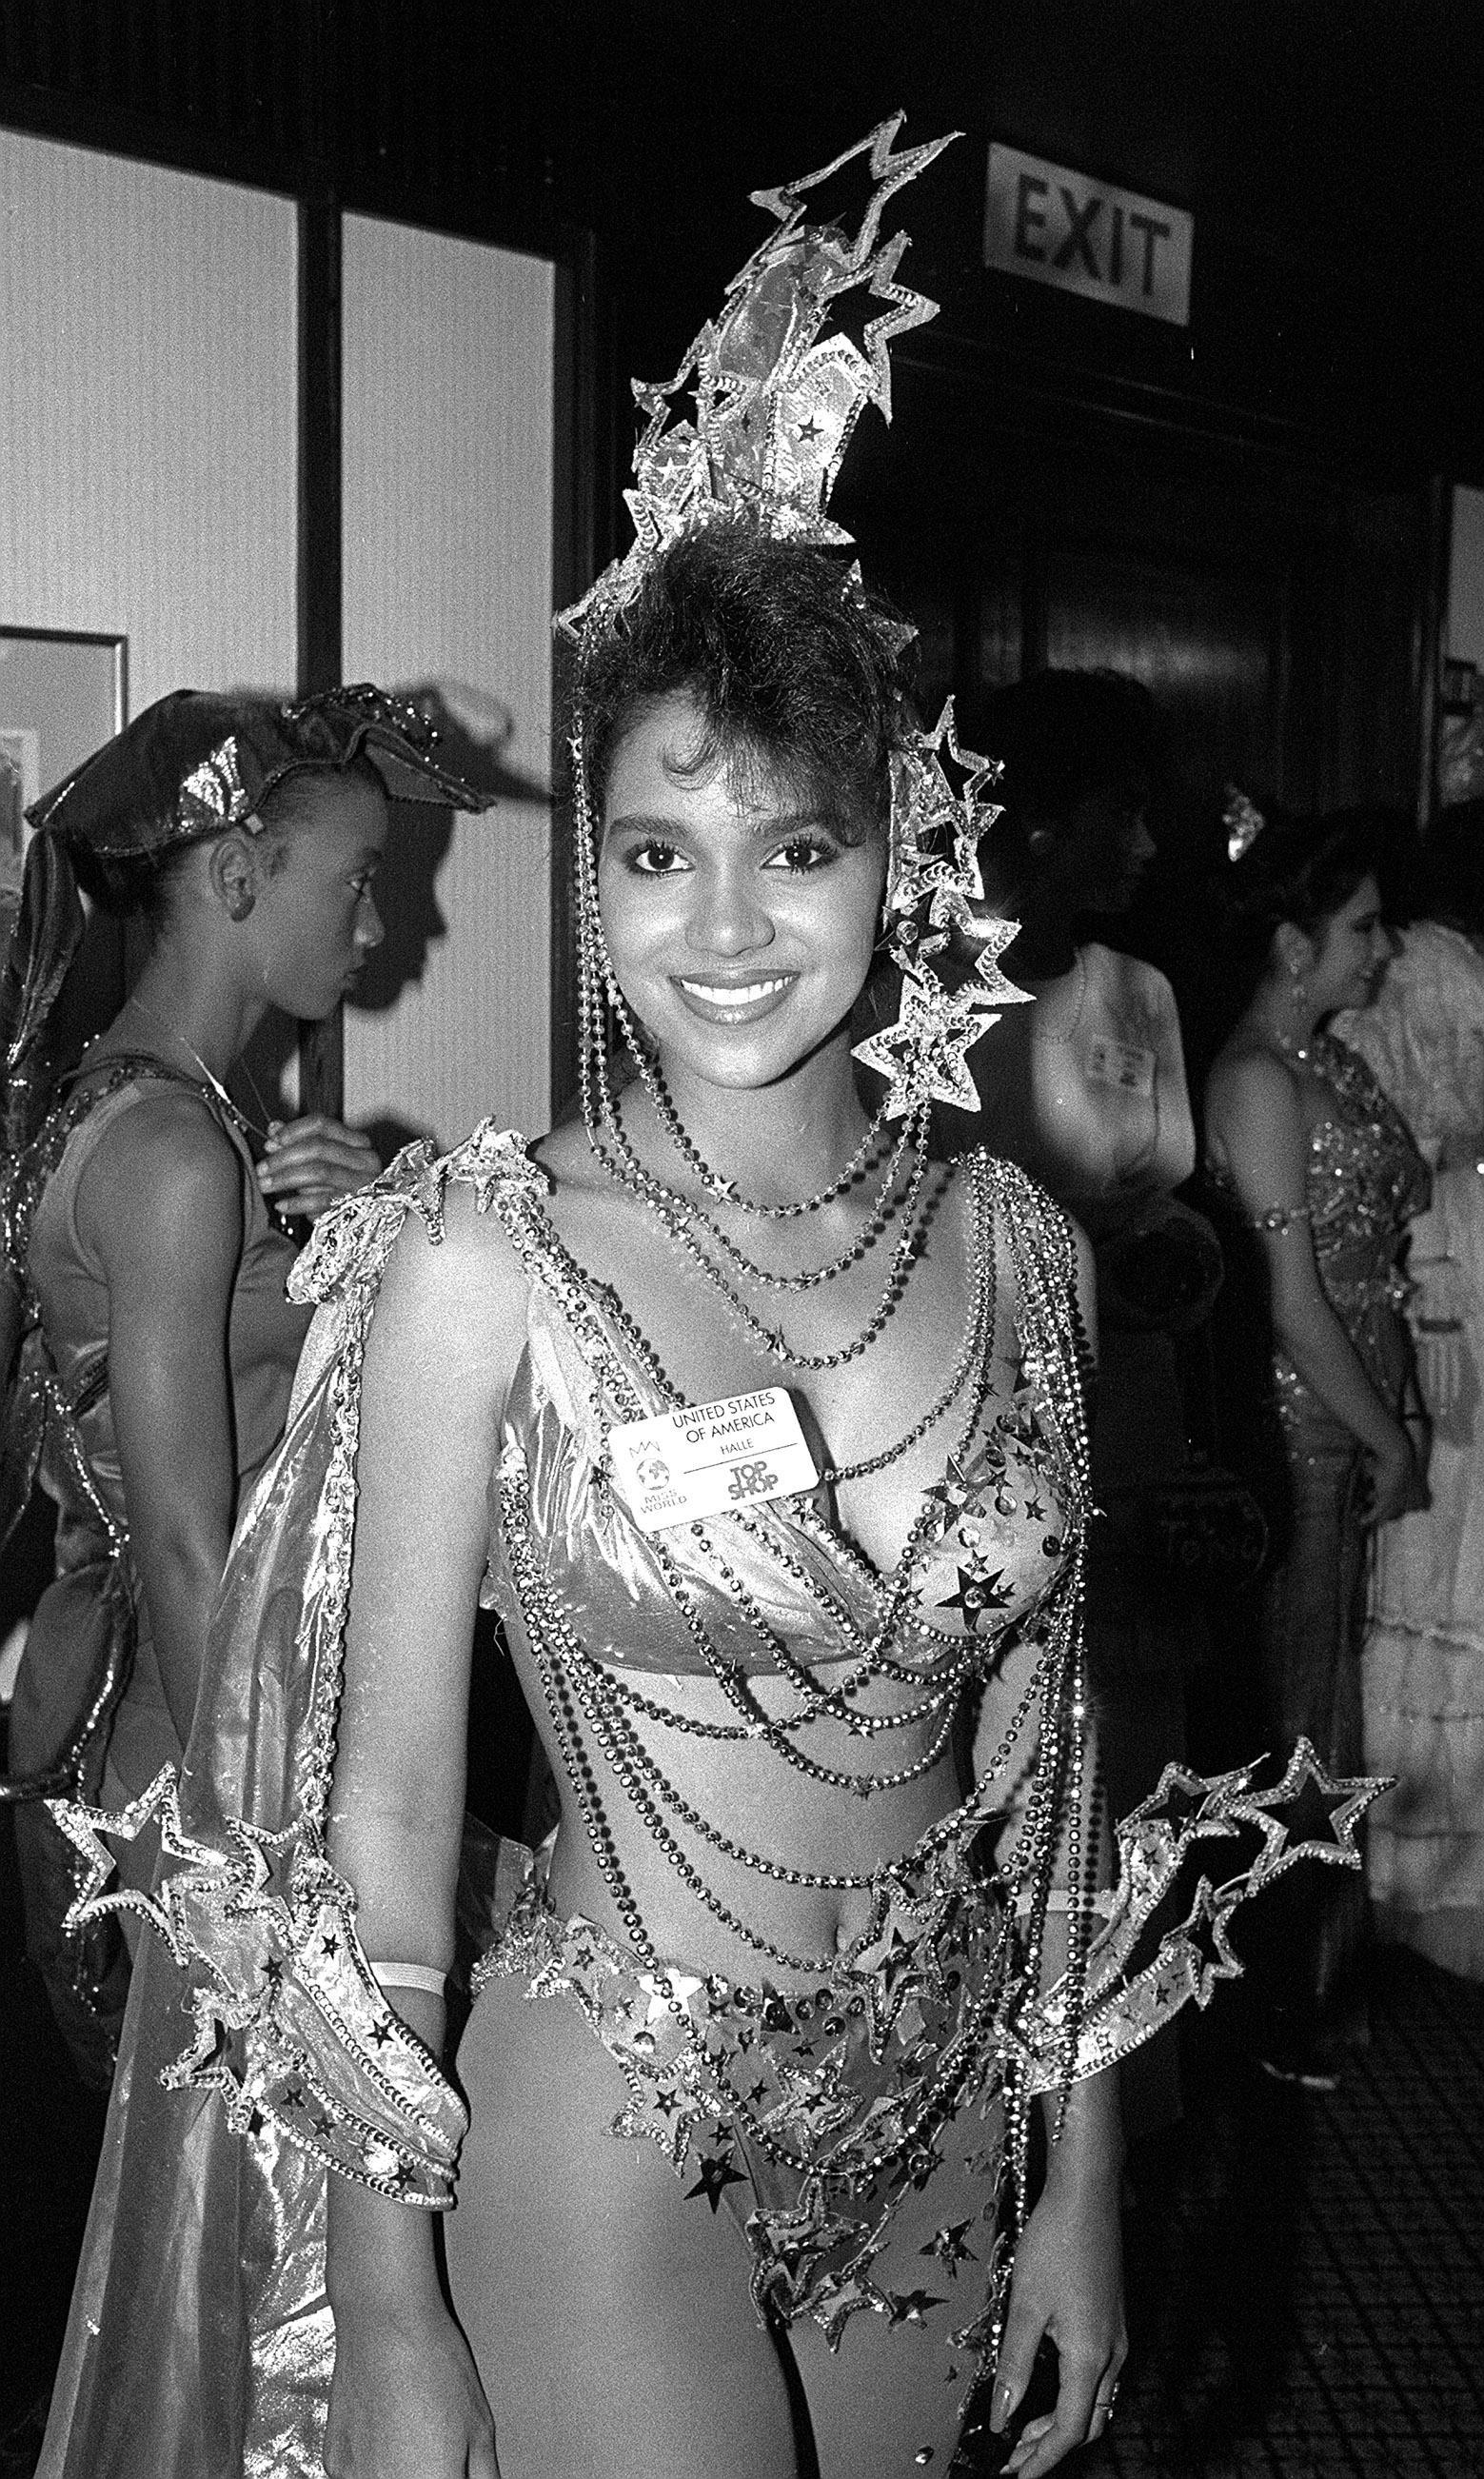 Miss USA Halle Berry poses at a Variety Club of Great Britain luncheon in 1986.